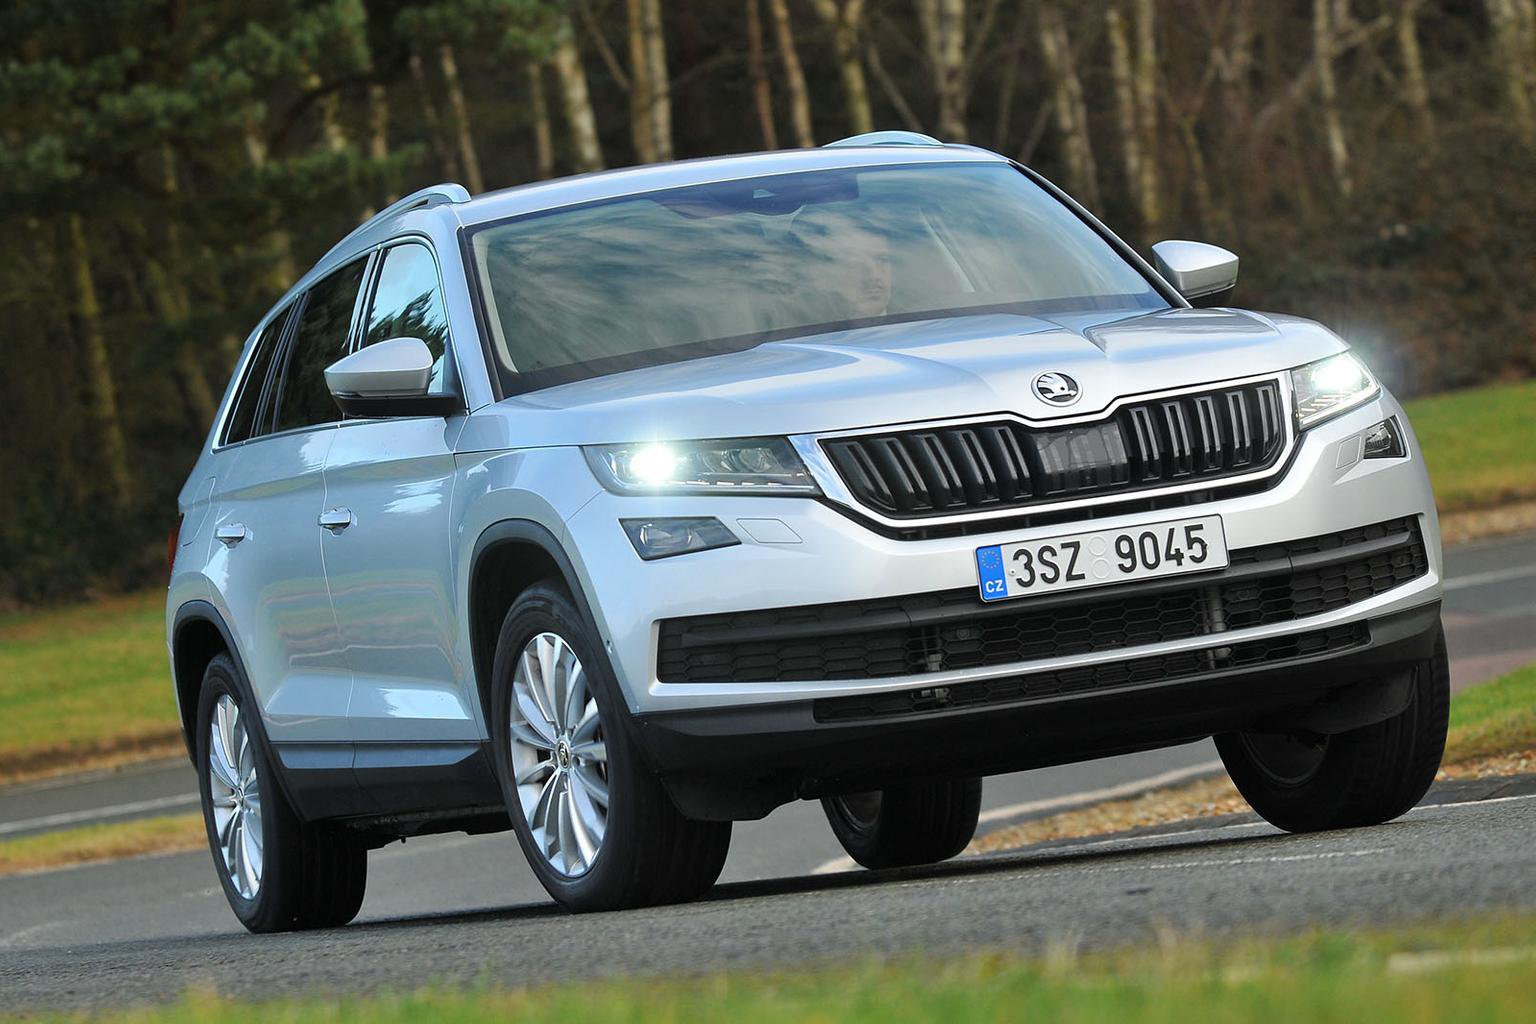 New Skoda Kodiaq vs Land Rover Discovery Sport vs Toyota Land Cruiser